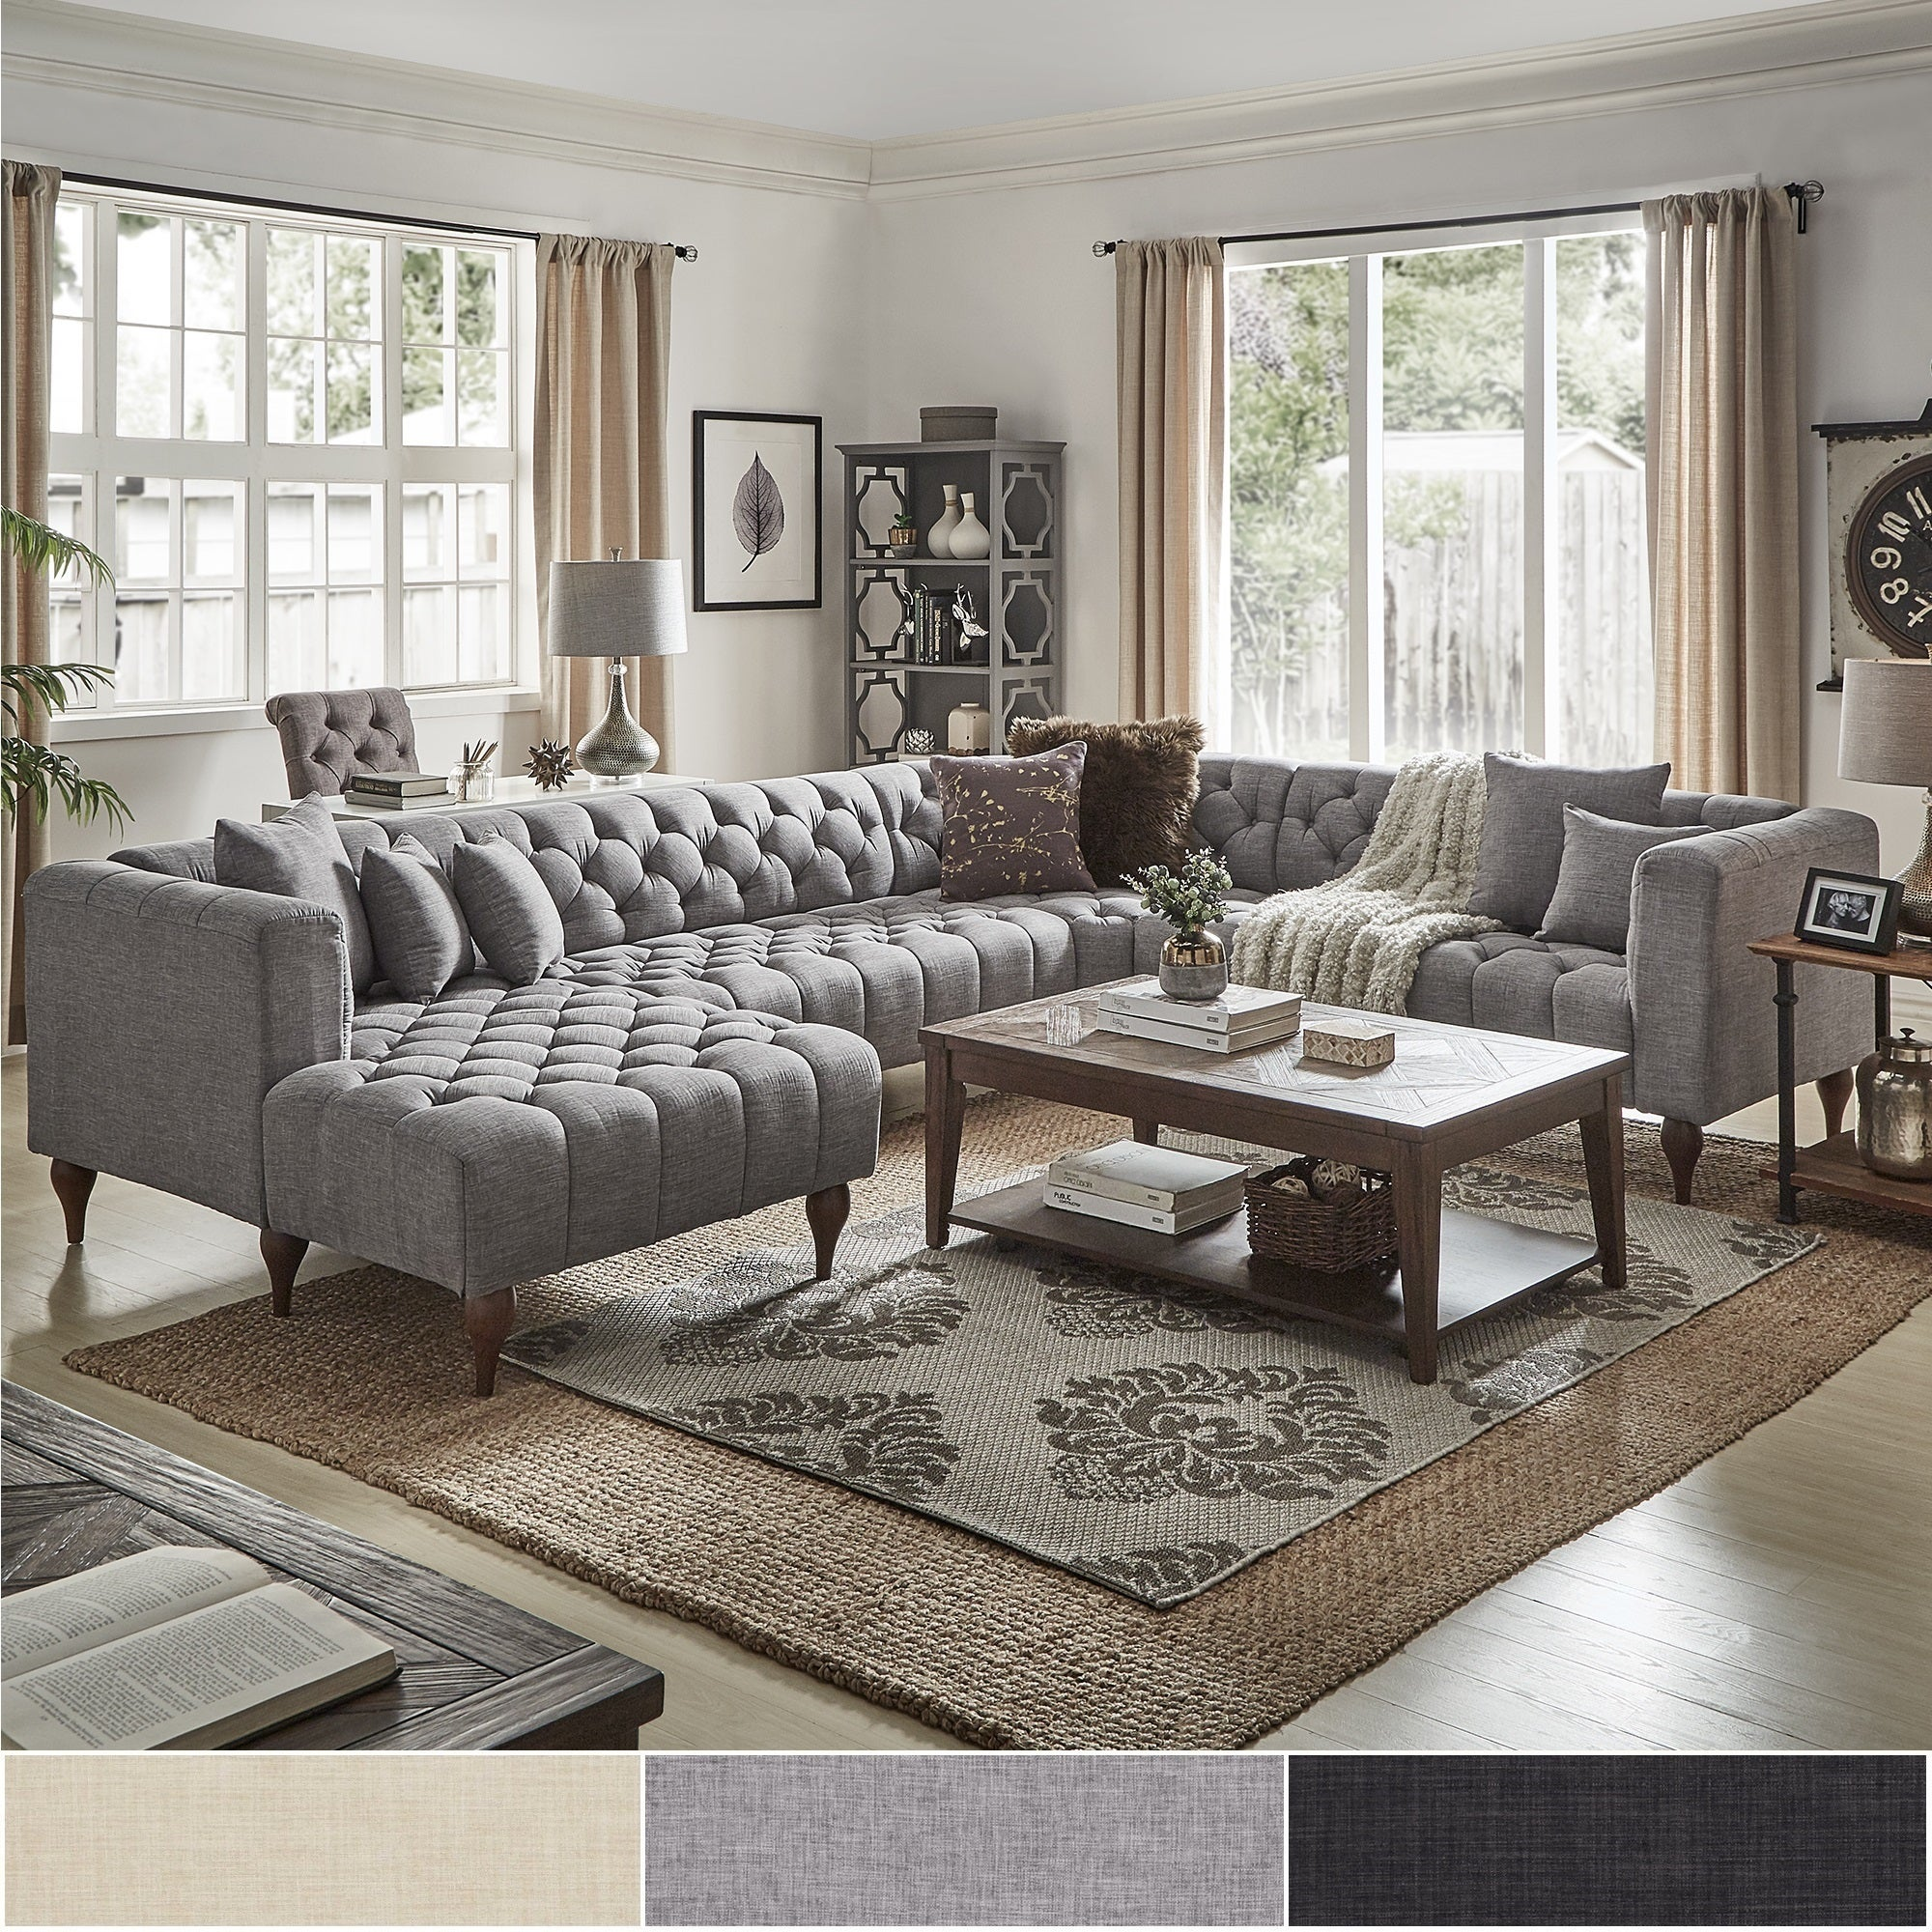 Danise Tufted Linen Upholstered Tuxedo Arm U-Shaped Sectional with Chaise by iNSPIRE Q Artisan (Grey Linen - Right Facing)